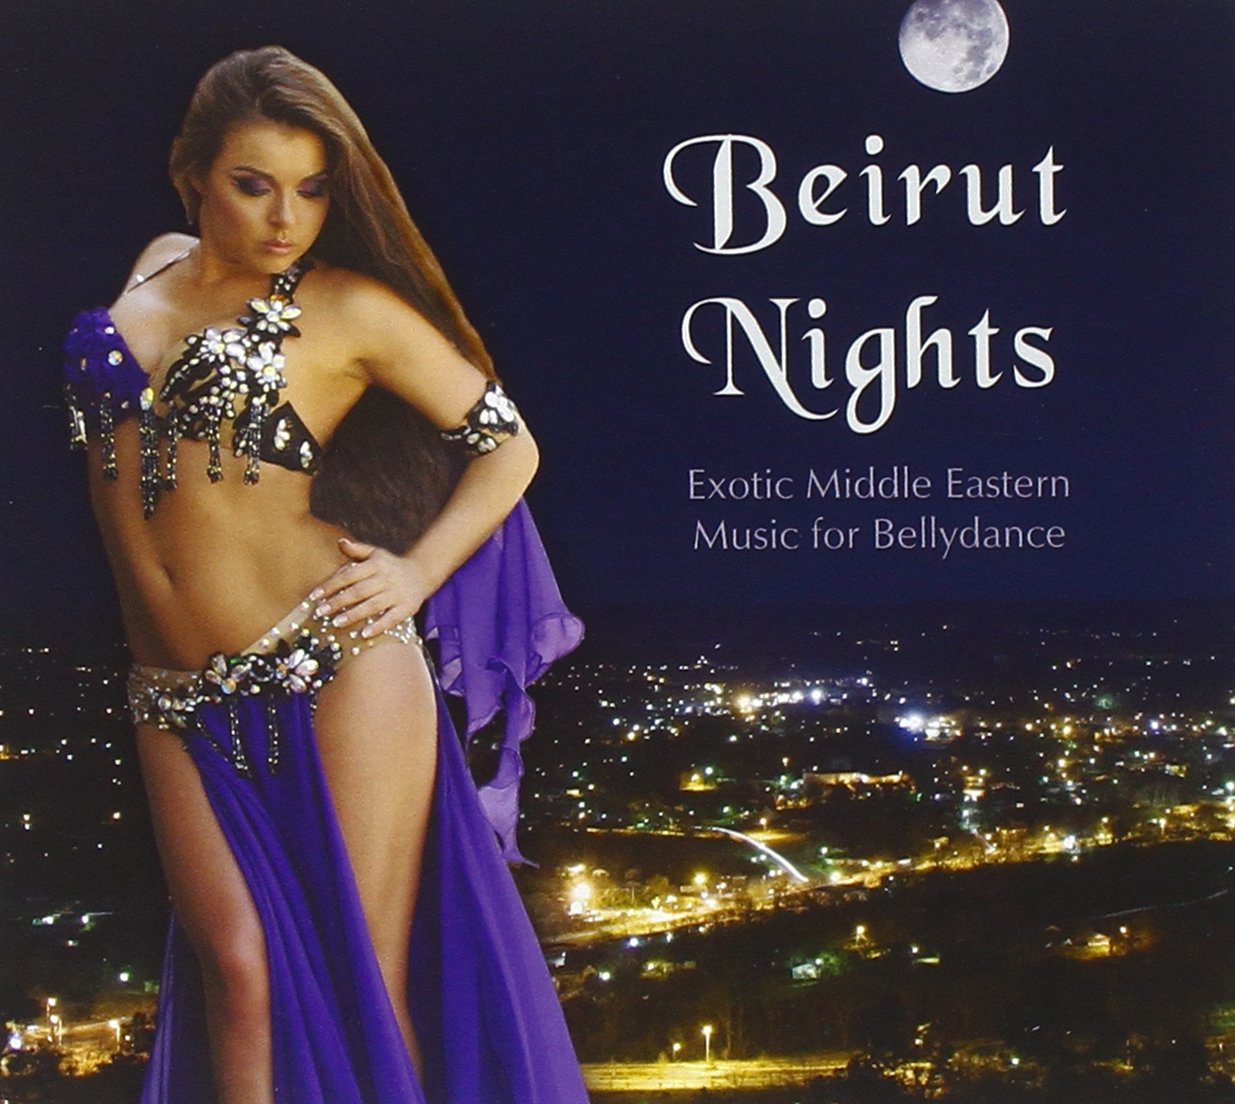 Beirut Nights: Exotic Middle Eastern Music